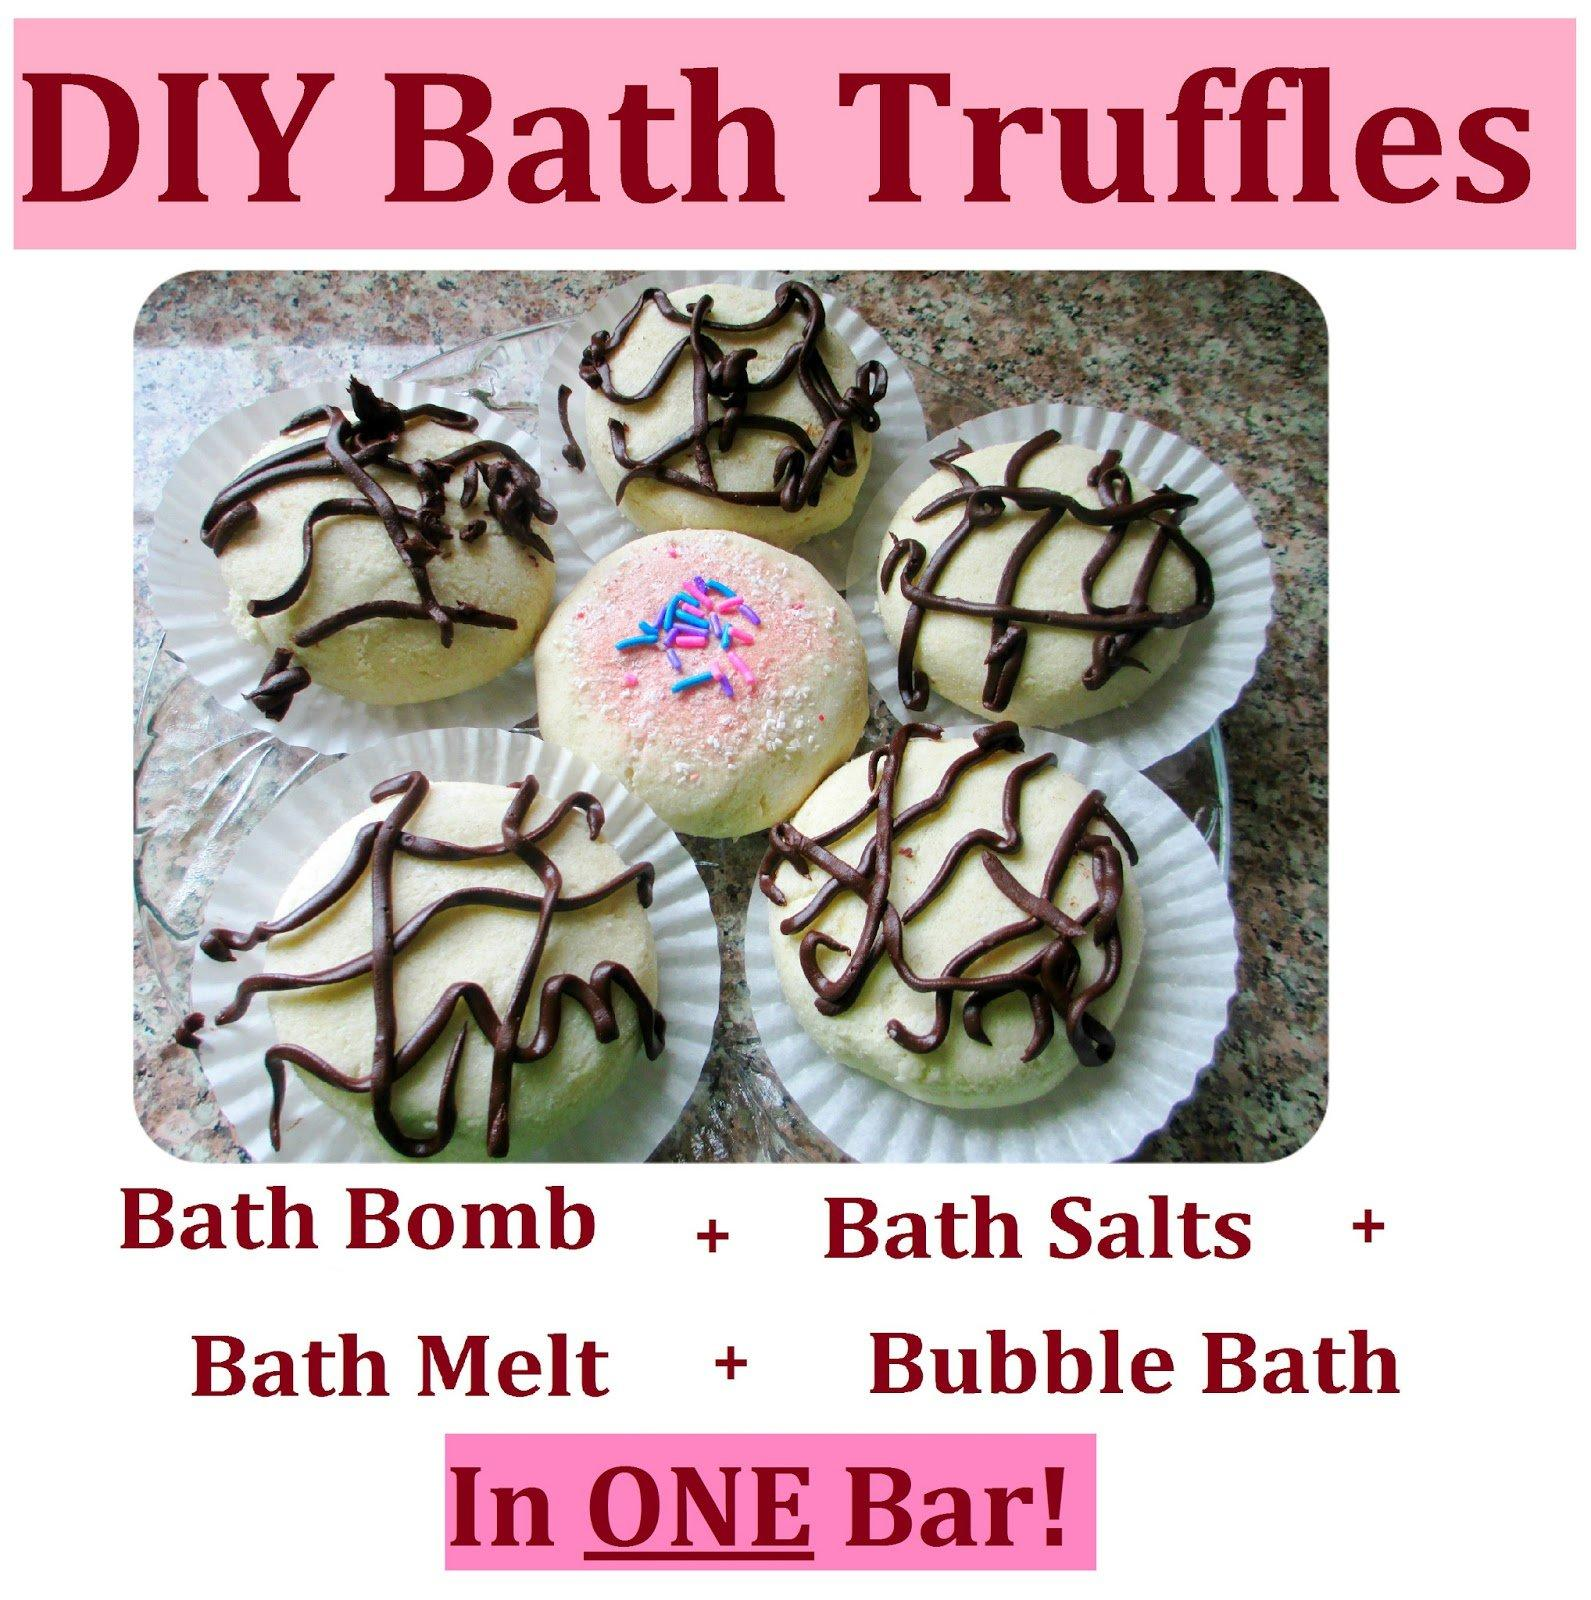 DIY Bath And Beauty Products As Valentine's Day Gifts 2017